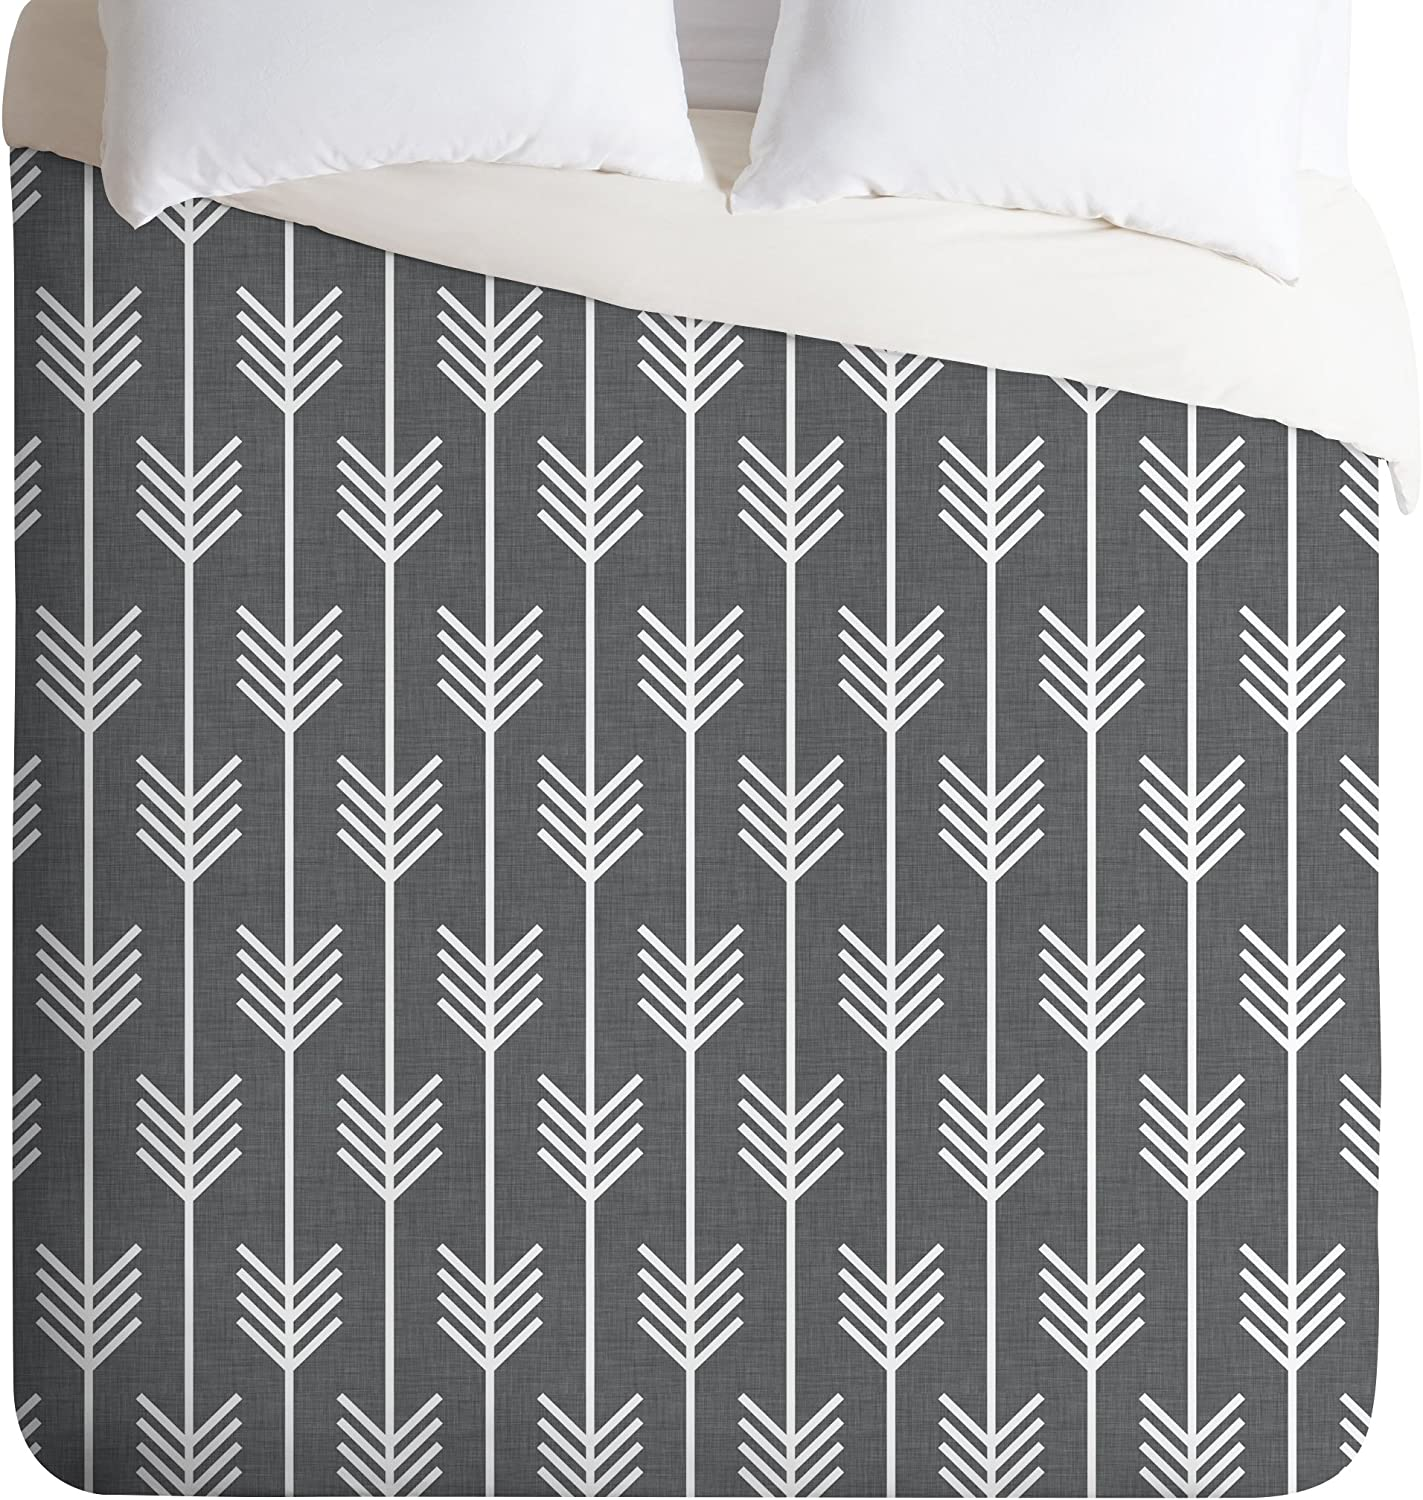 Deny Designs Holli Zollinger Arrows Cover Sacramento Mall Twin Duvet New Orleans Mall Grey